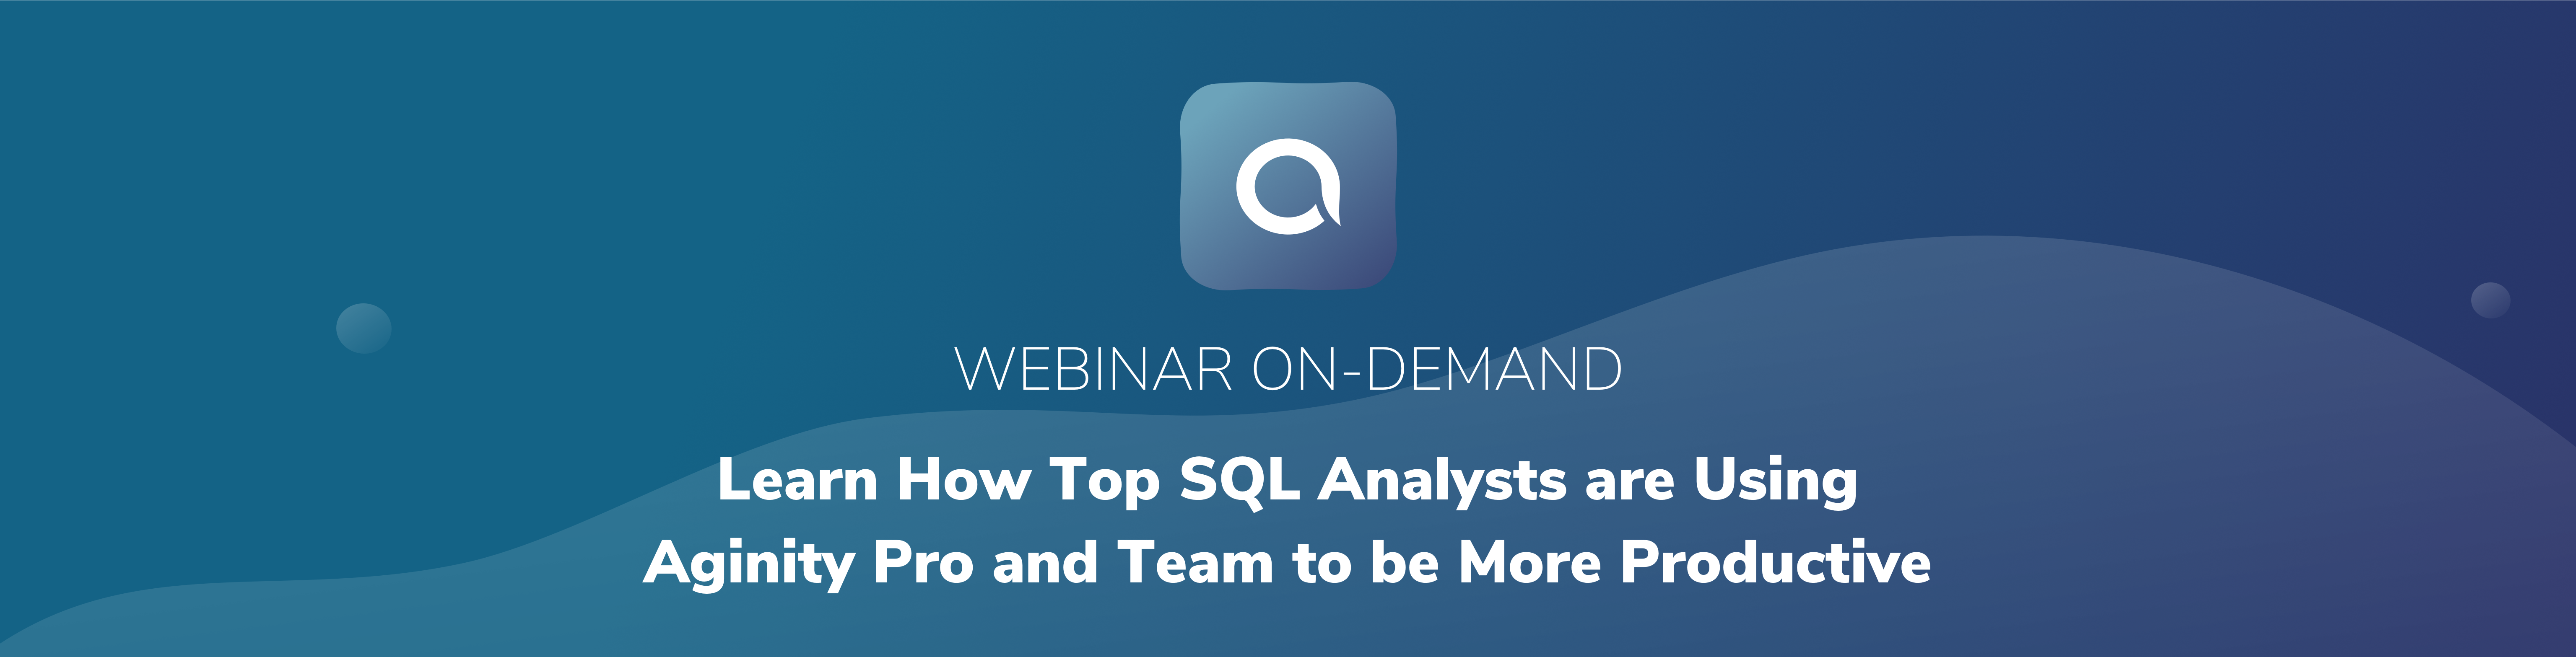 On-Demand - learn how top sql analysts are more productive with Pro and Team@2x